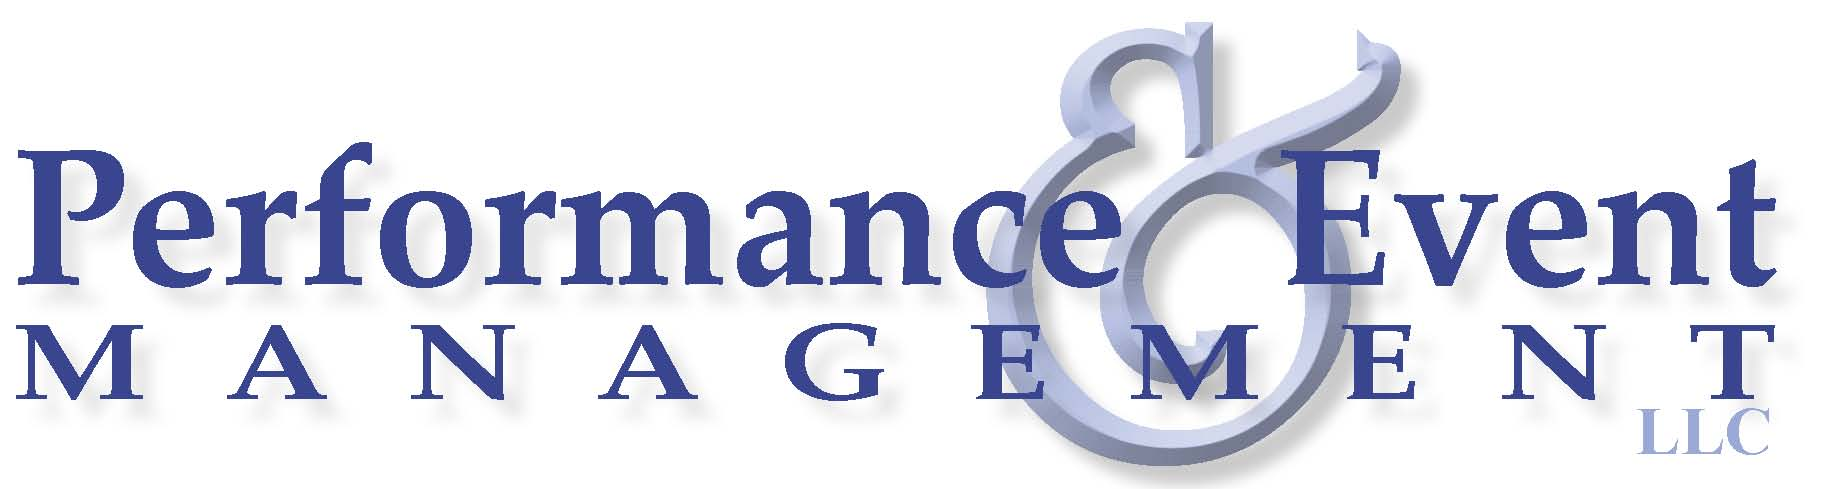 Performance & Event Management, LLC